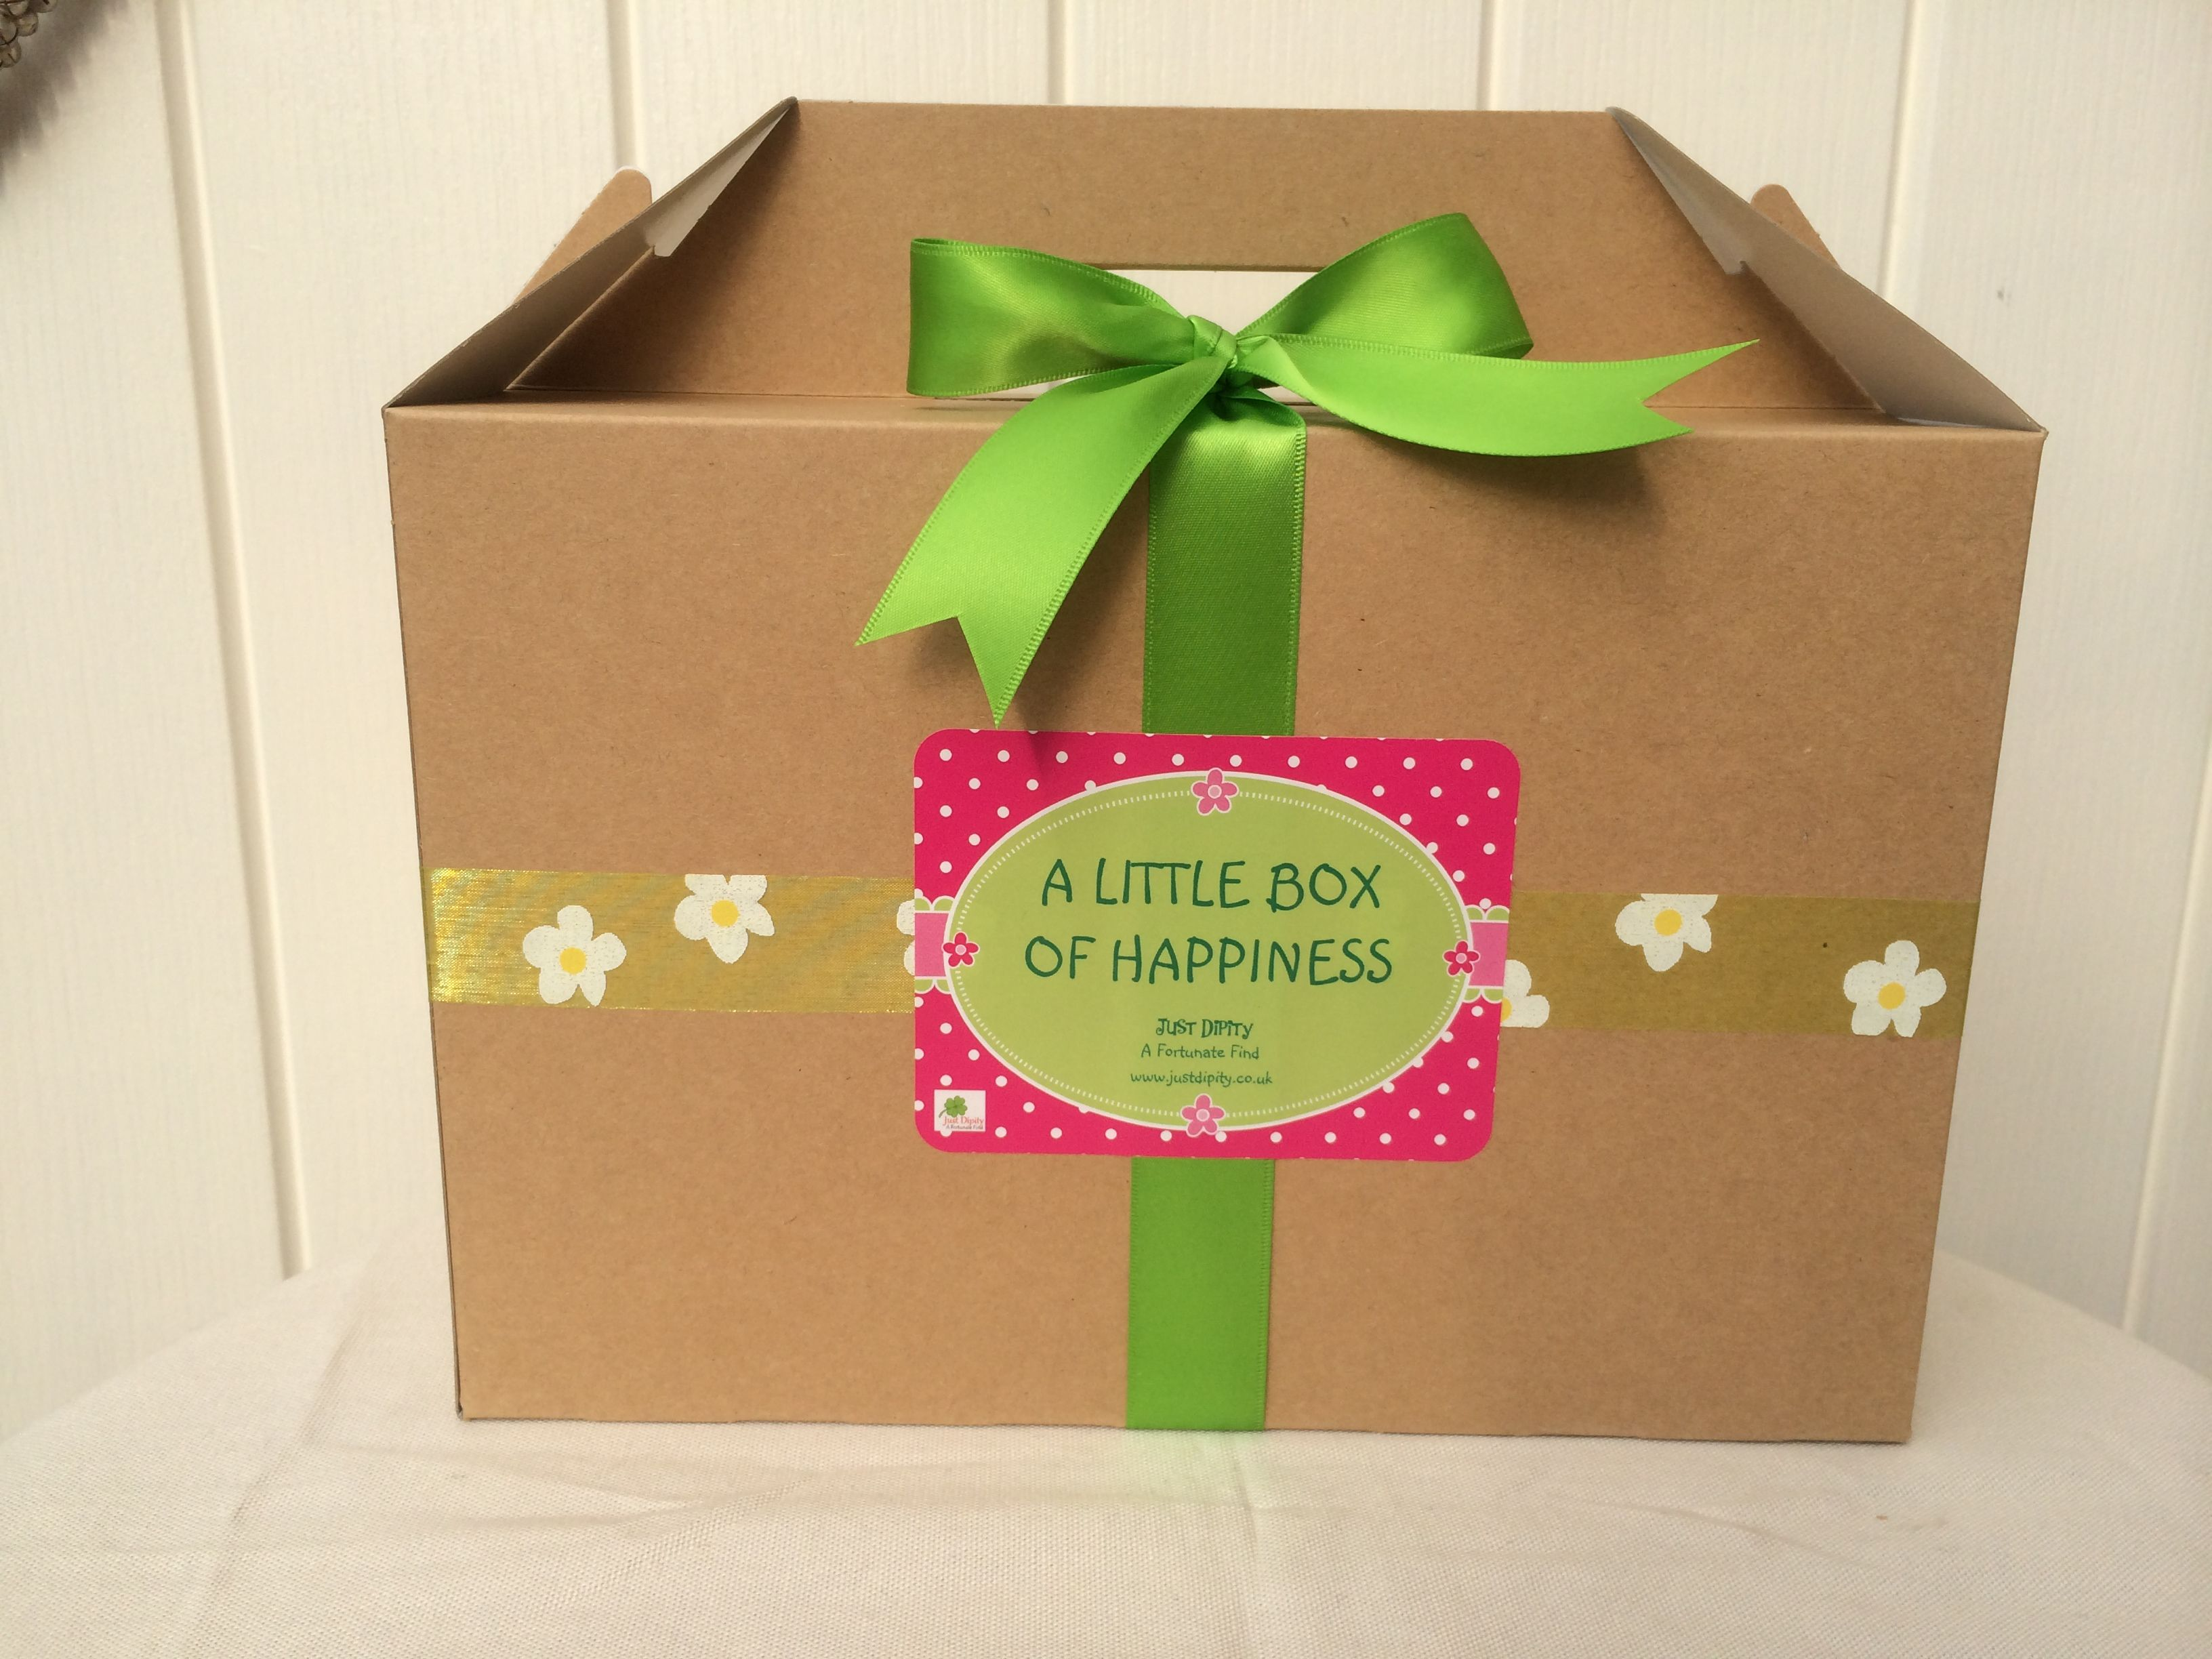 Pin by Just Dipity on Just Dipity   Crafts, Little boxes, Gifts